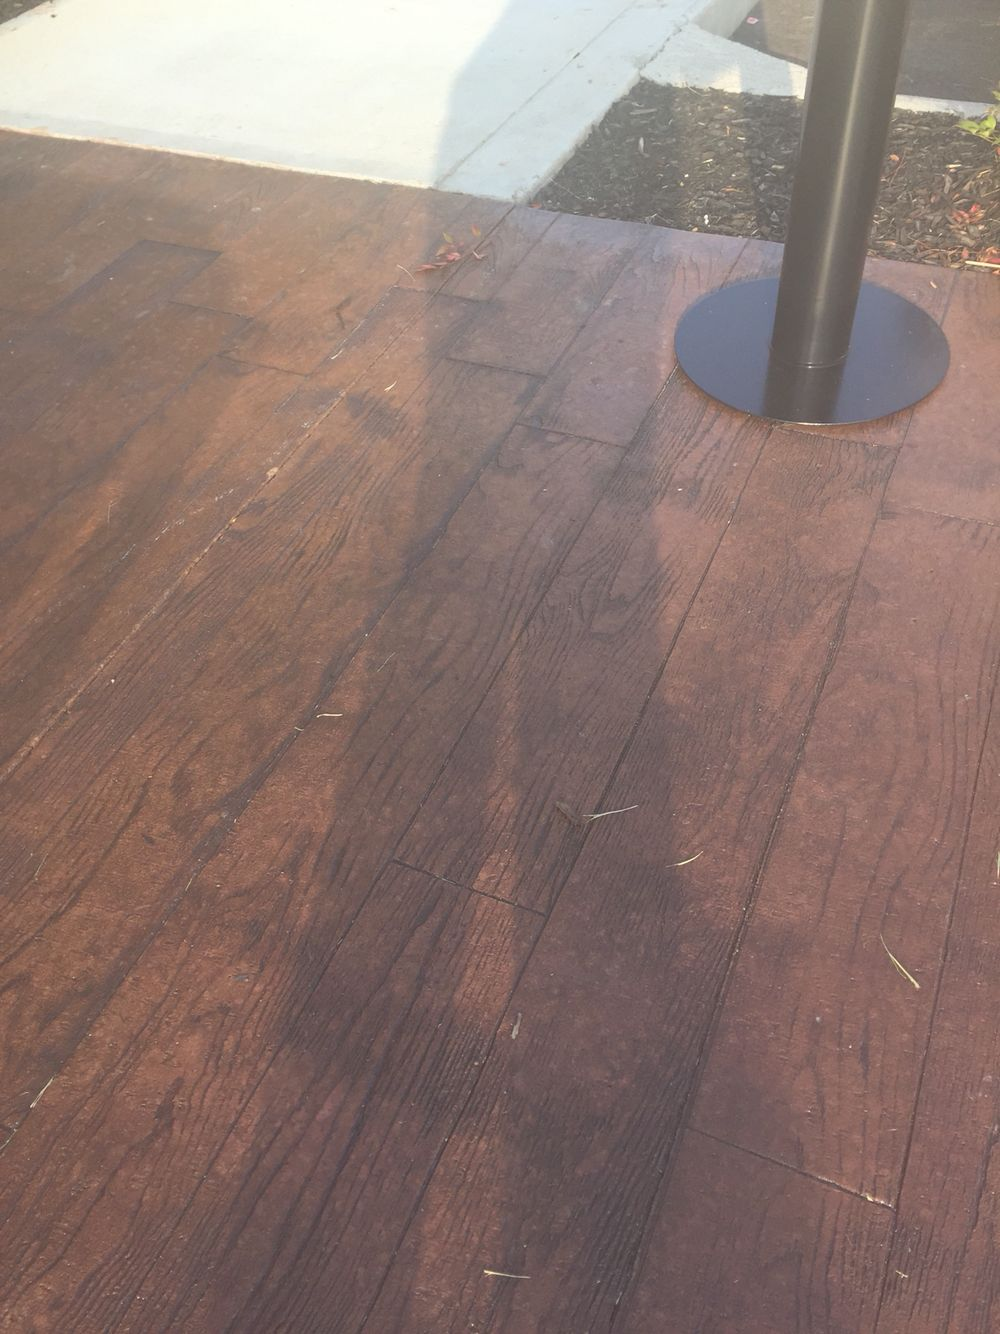 Concrete stamped and stained that looks like wood